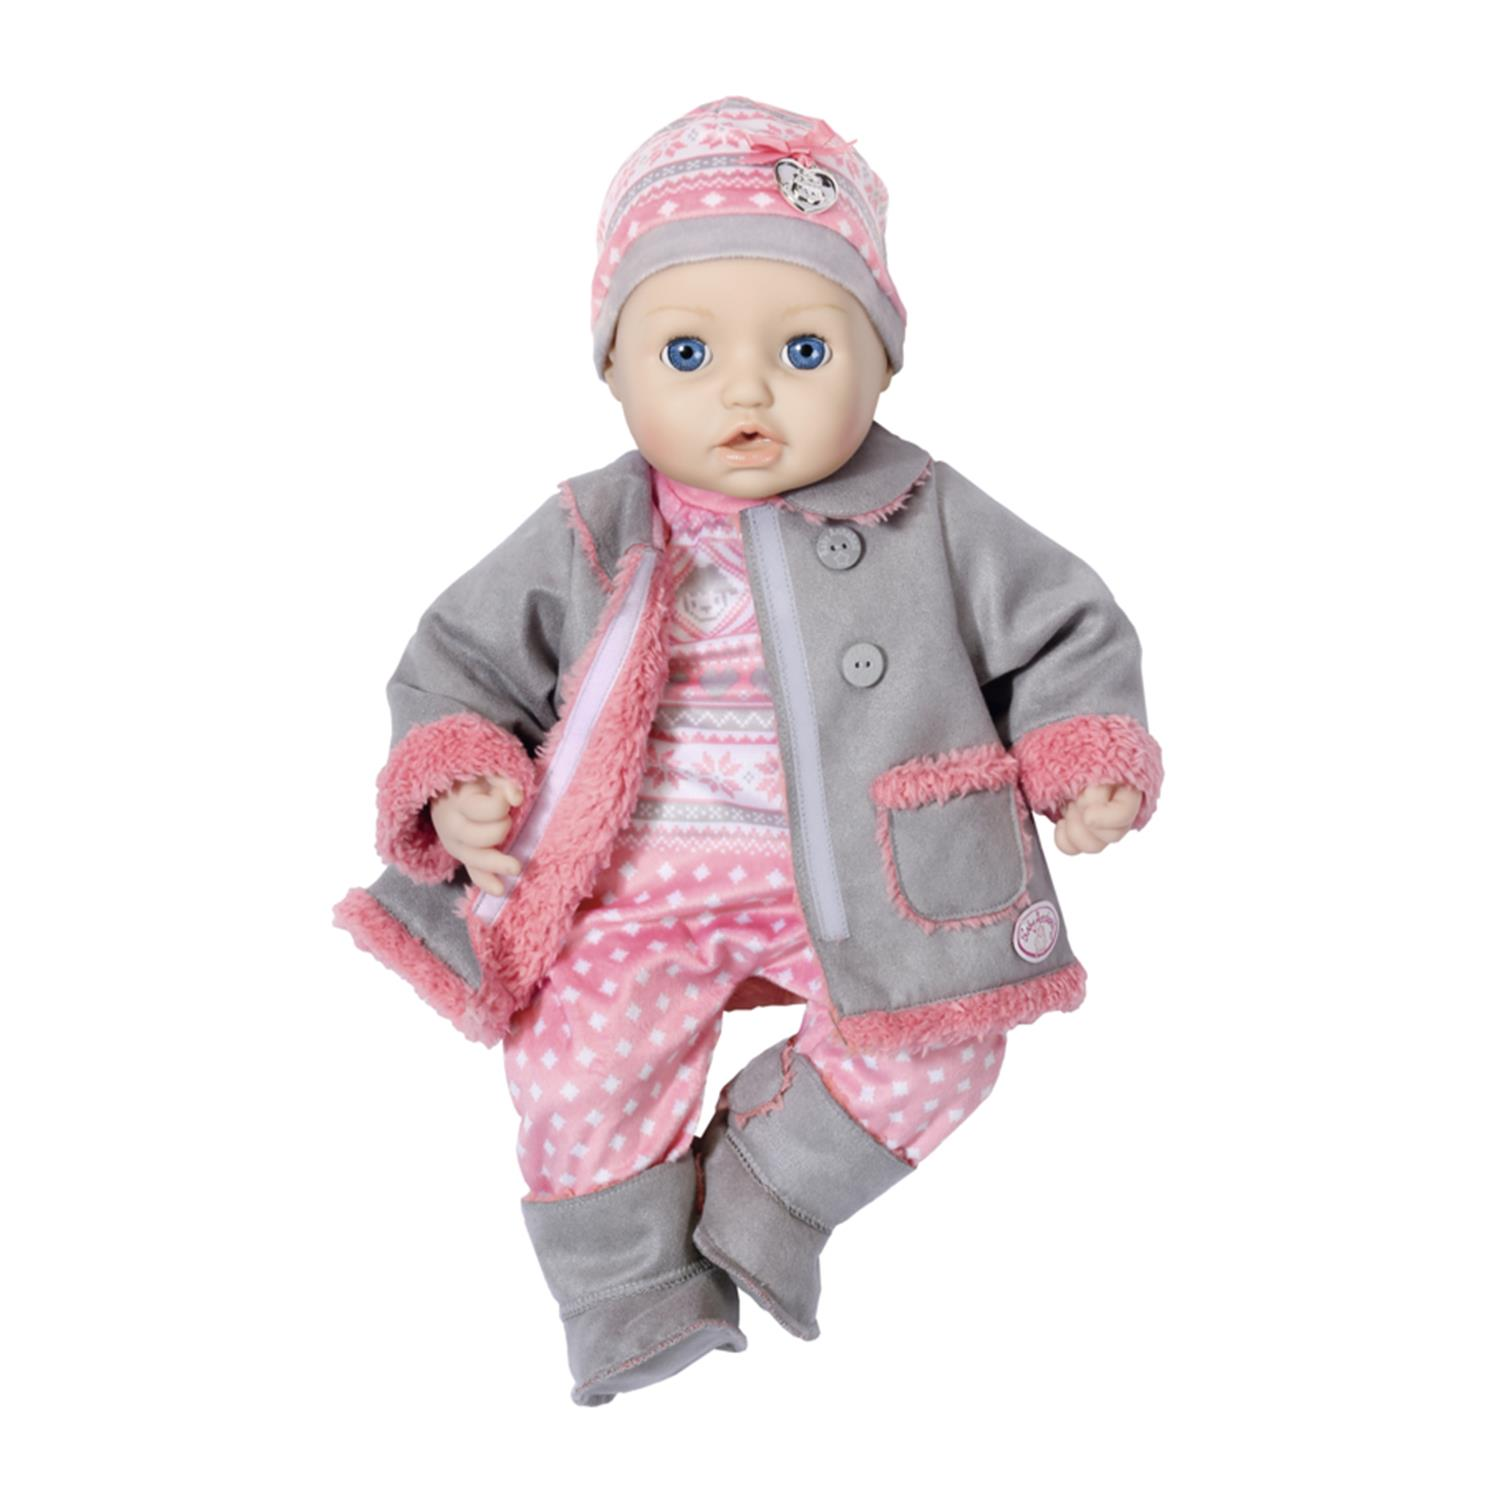 Baby Doll Küche Zapf Creation 700099 Baby Annabelle Deluxe Kalte Tage